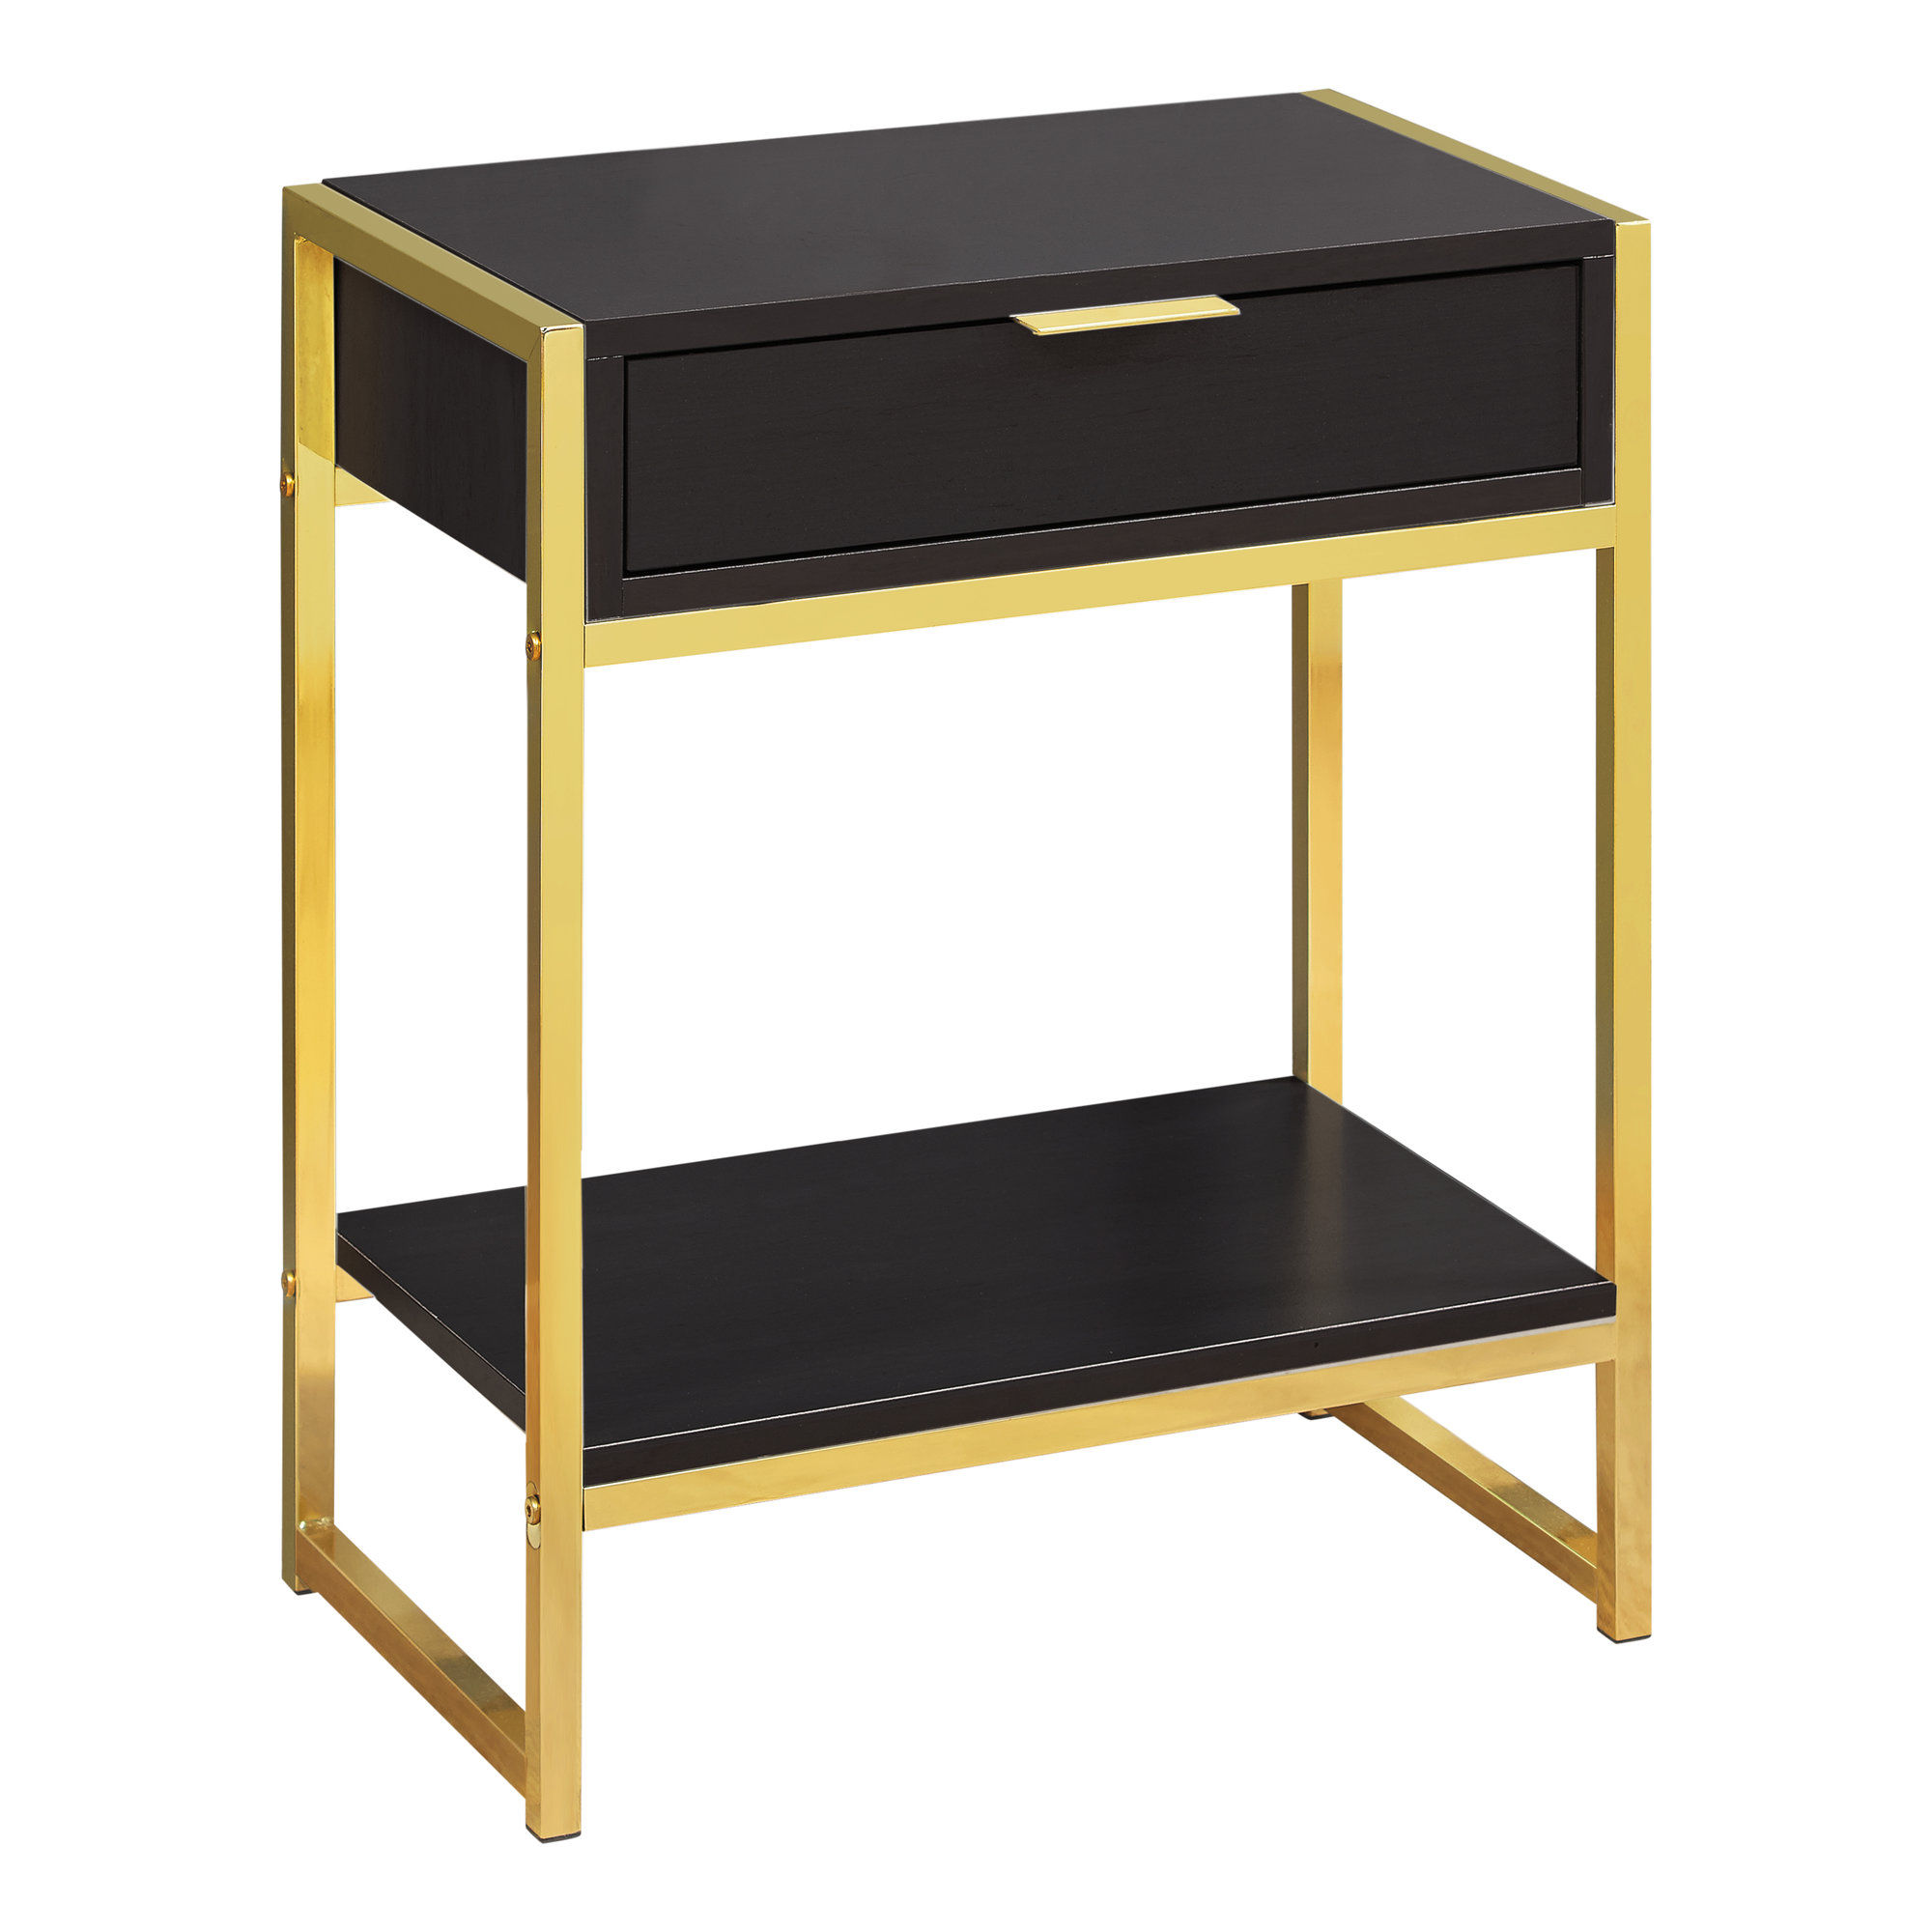 monarch specialties cappuccino gold metal drawer accent table the mnc with tables bronze ornate side unique end beach bedroom decor skirting patio coffee storage furniture covers